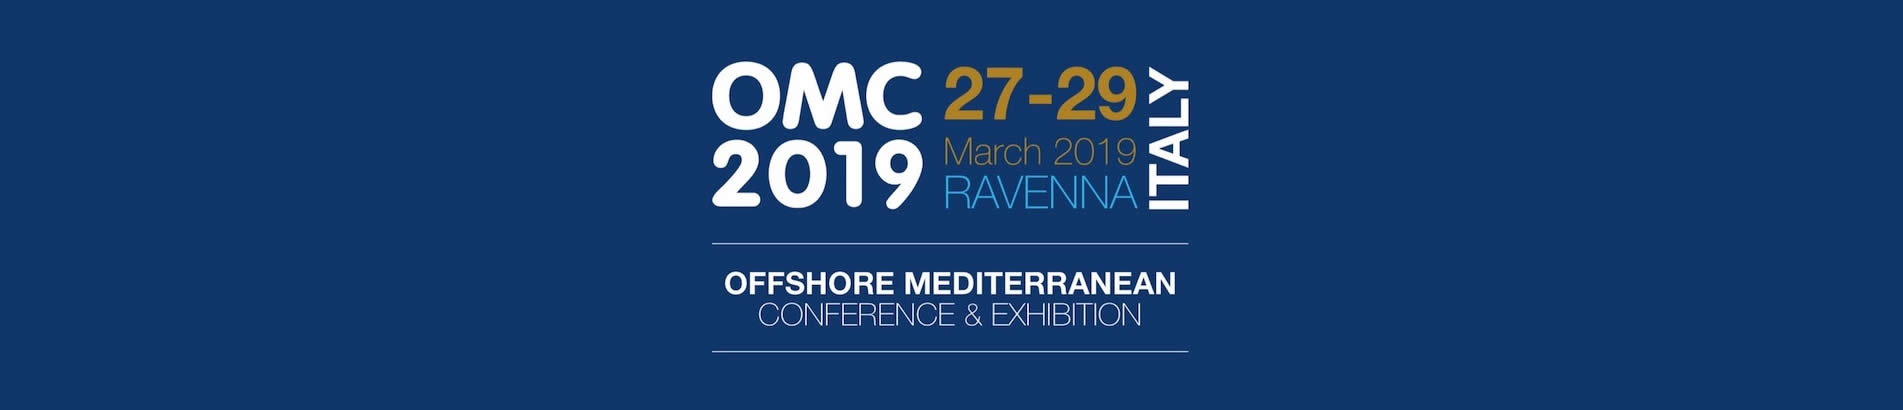 OMC 2019 - 27/29 MARCH 2019 ITALY